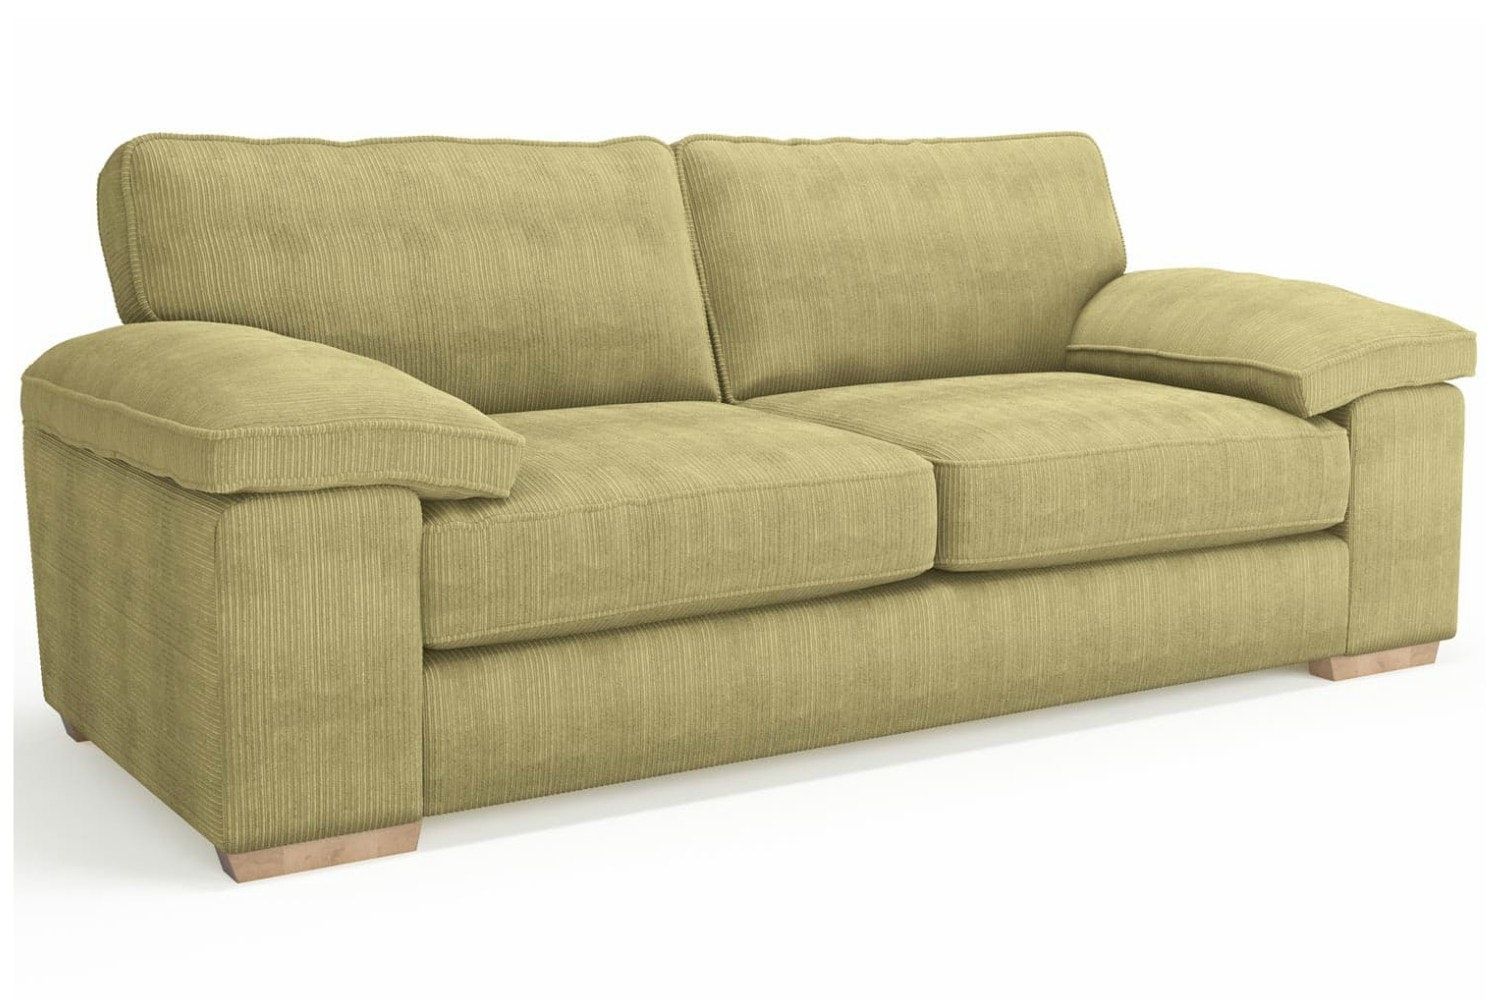 utah 3 seater sofa fabric sofas shop at harvey norman ireland rh harveynorman ie cheap sofas usa